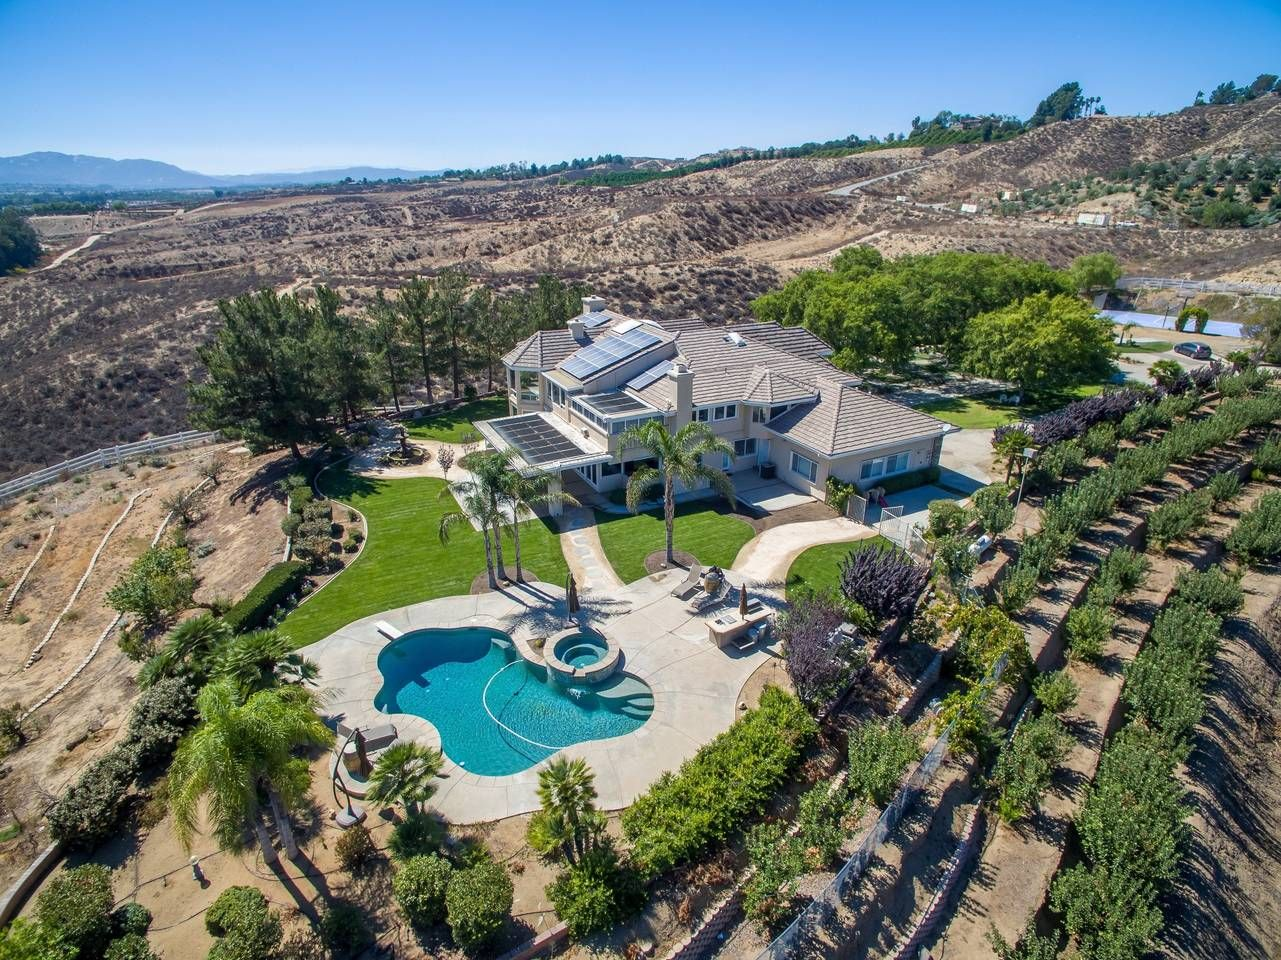 Vineyard View 10 Acre Private Gated Estate Houses For Rent In Temecula California Vacation House Rental Wedding Temecula